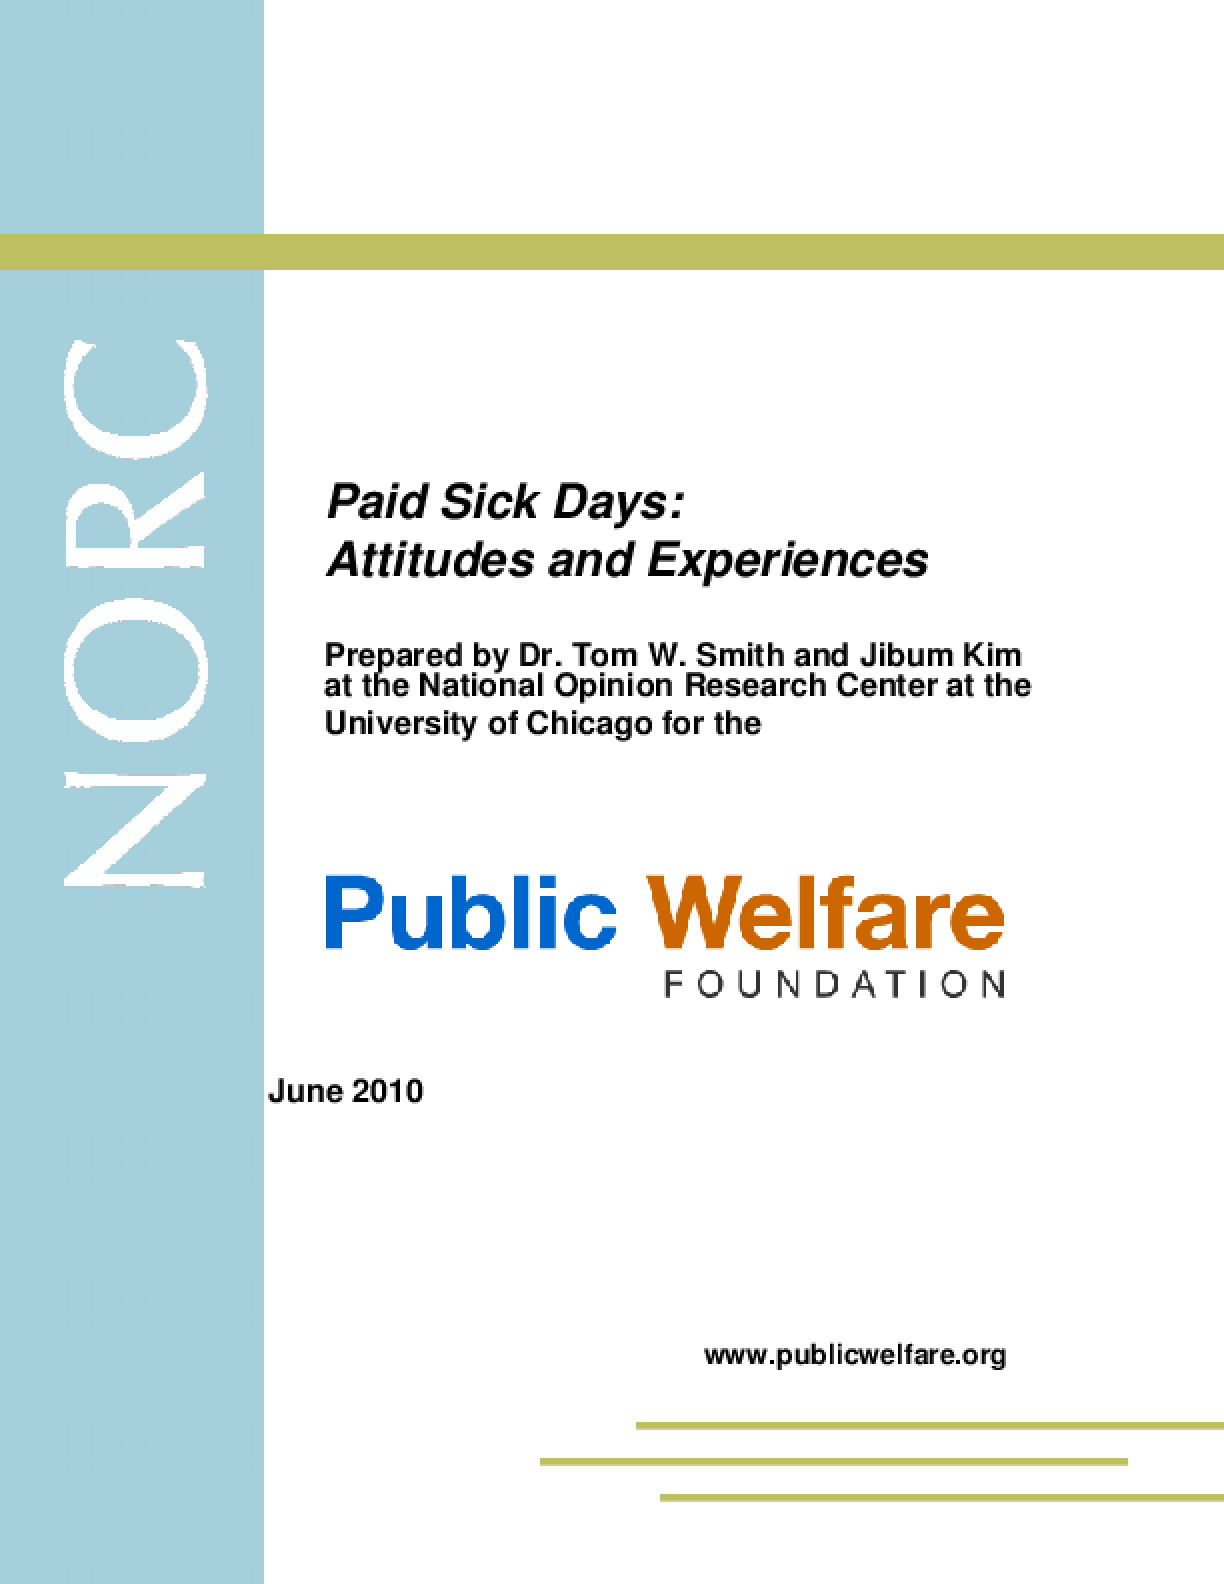 Paid Sick Days: Attitudes and Experiences